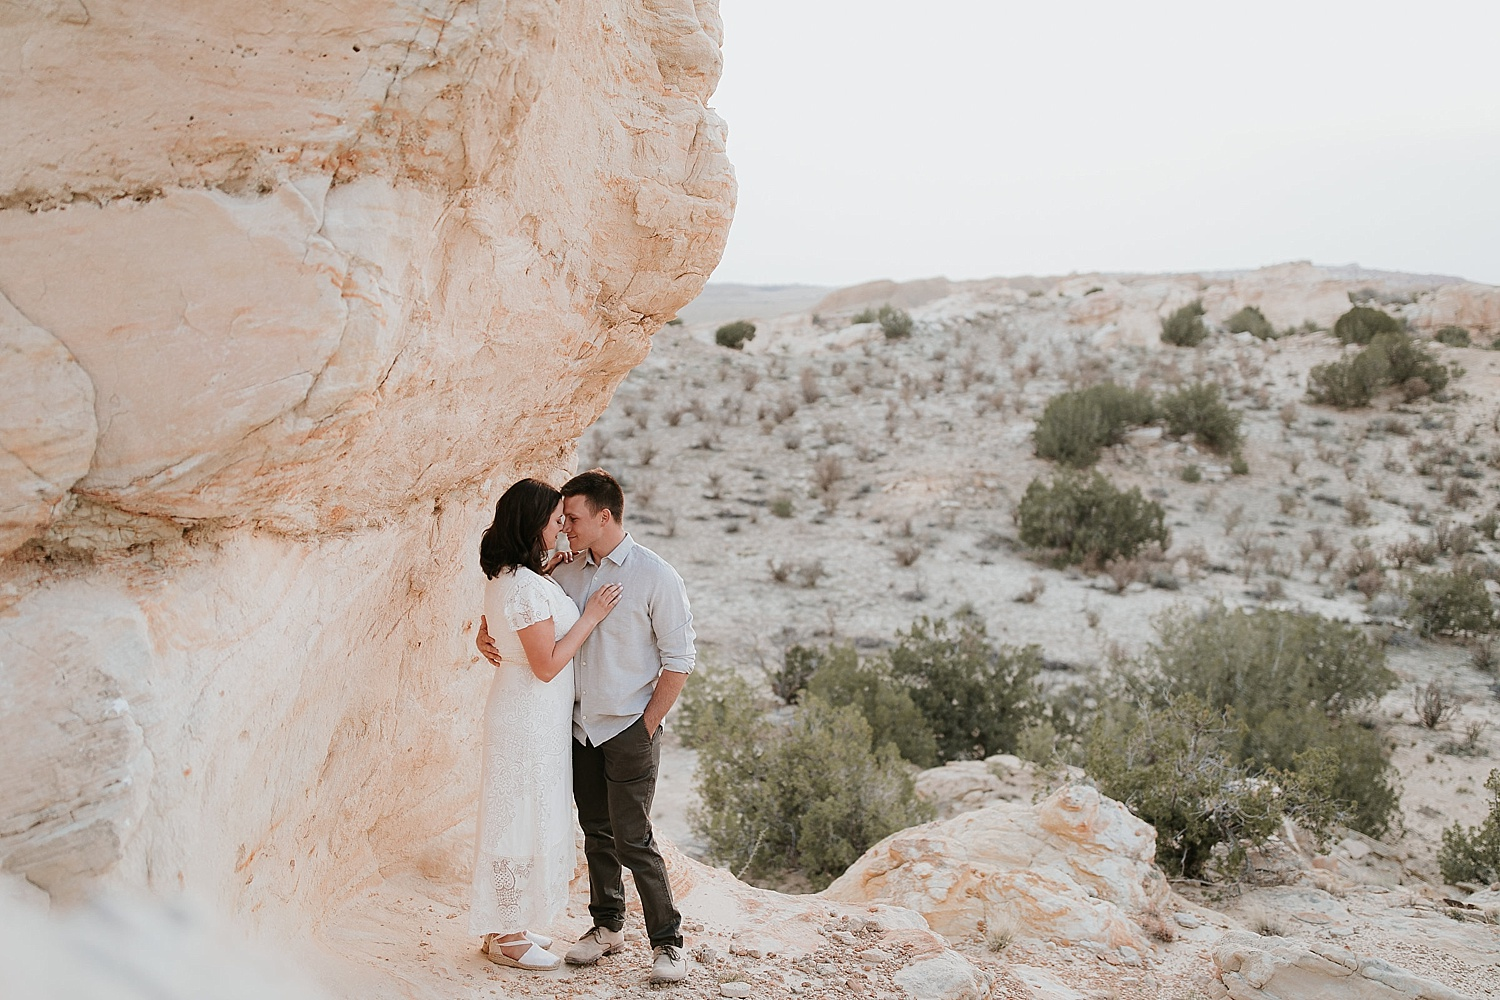 Alicia+lucia+photography+-+albuquerque+wedding+photographer+-+santa+fe+wedding+photography+-+new+mexico+wedding+photographer+-+new+mexico+engagement+-+desert+engagement_0016.jpg